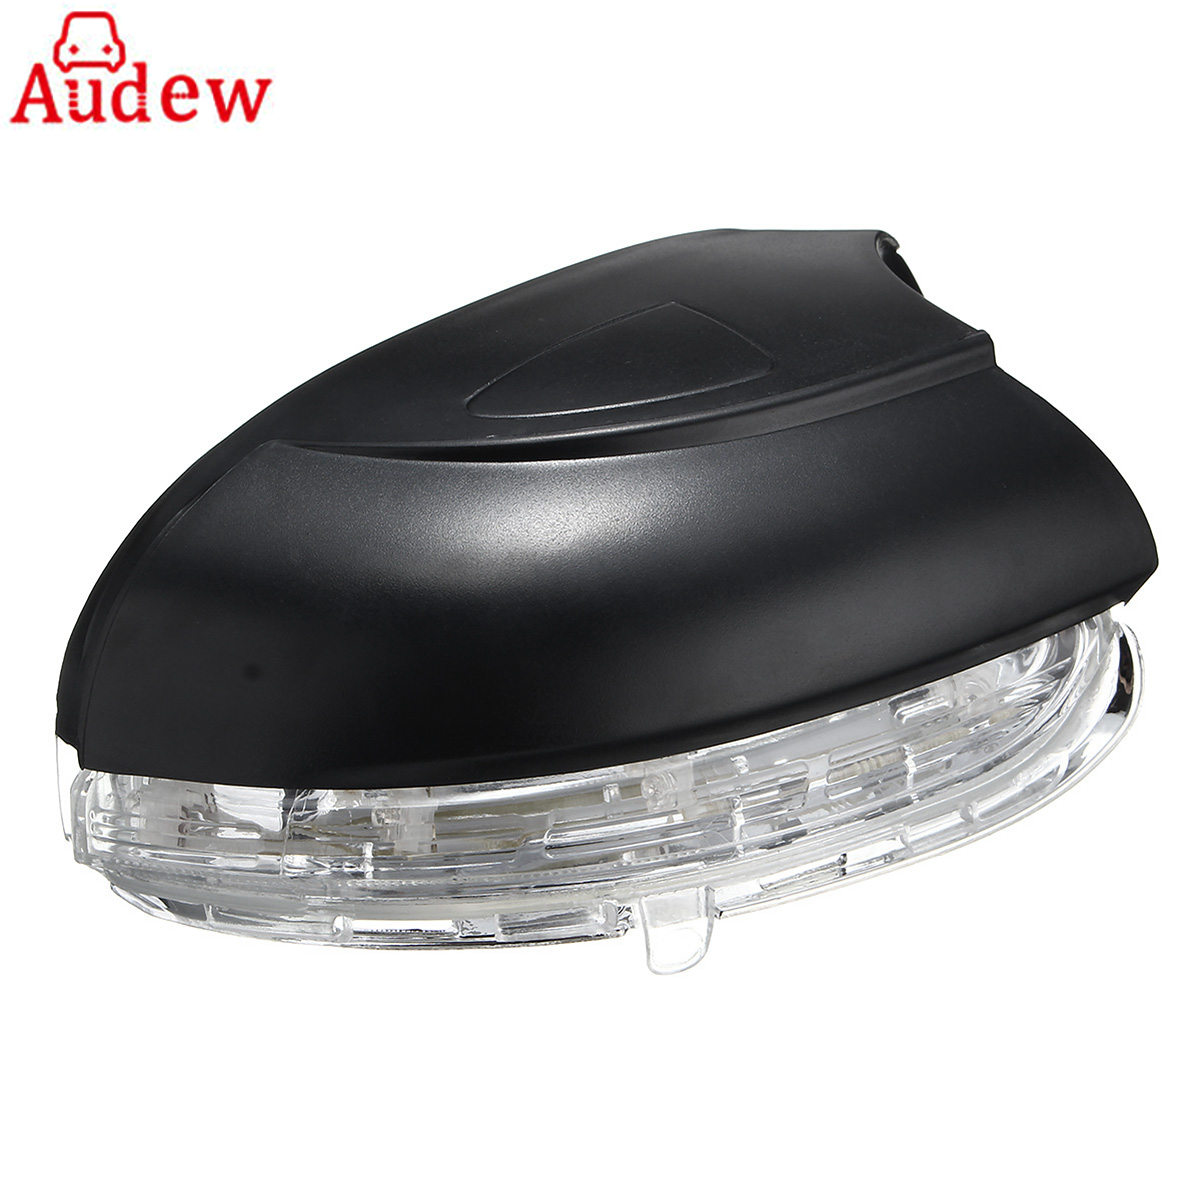 Turn Signal Light Lamp Right/Left Driver Off Side LED Mirror Indicator Lamp For VW Golf MK6 2009-2012 left and right car rearview mirror light for mercedes benz w164 gl350 gl450 gl550 ml300 ml350 turn signal side mirror led lamp